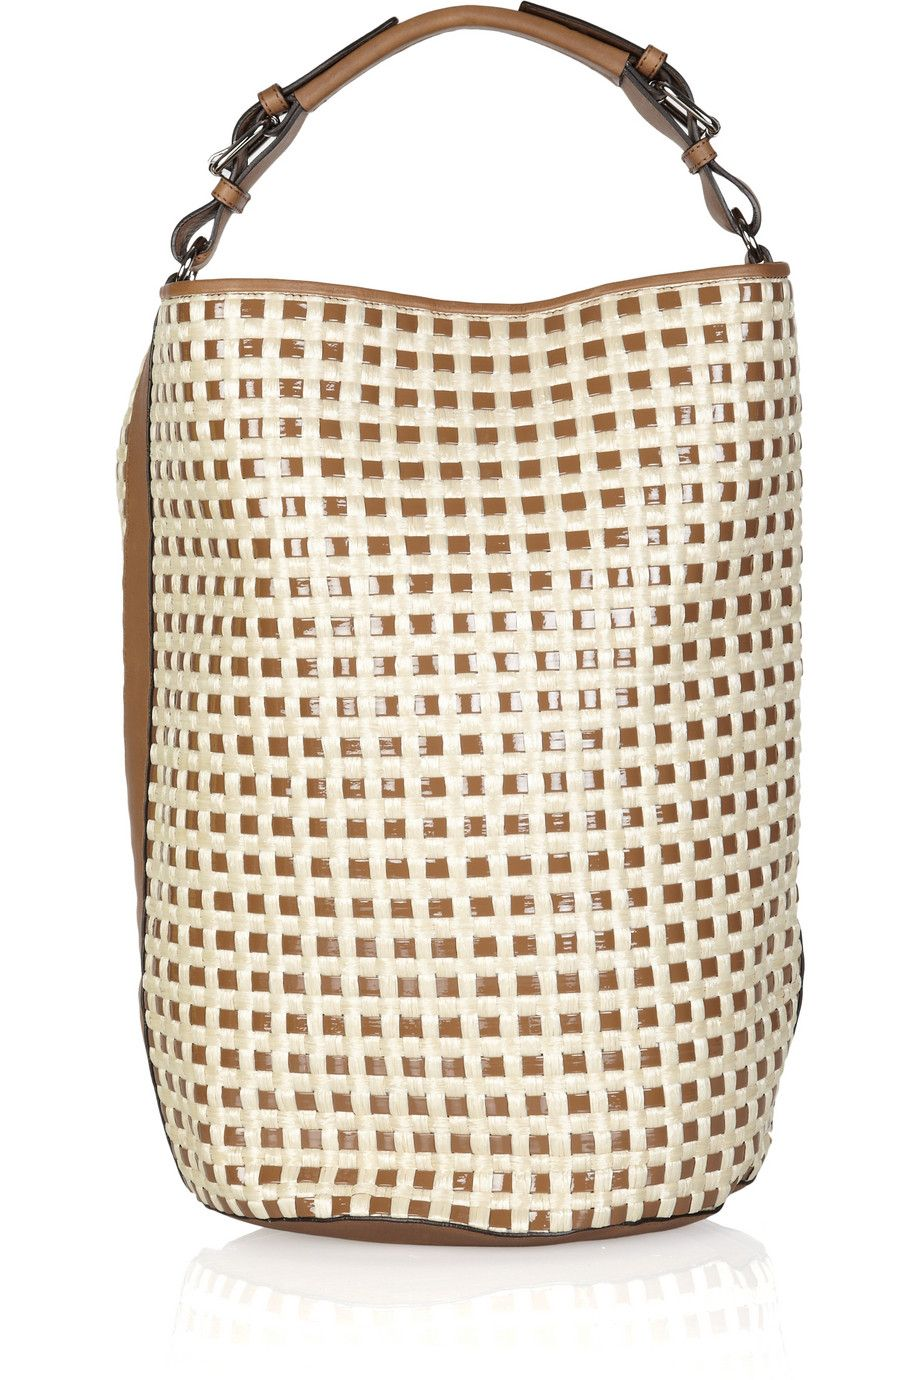 Marni Woven patent-leather and raffia shoulder bag   # Pin++ for Pinterest #